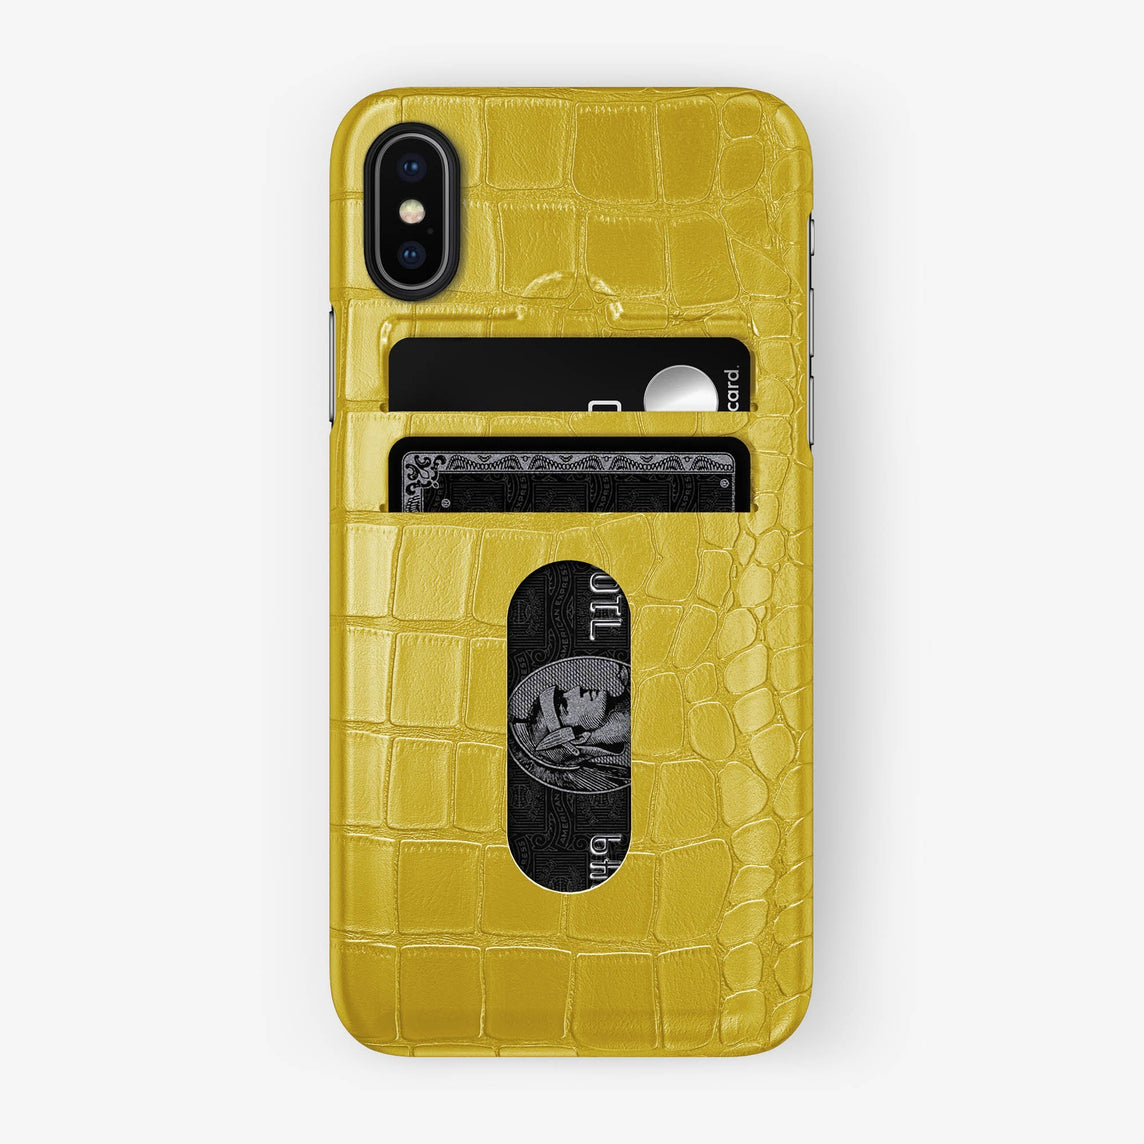 Alligator Card Holder Case iPhone Xs | Yellow - Black - Hadoro